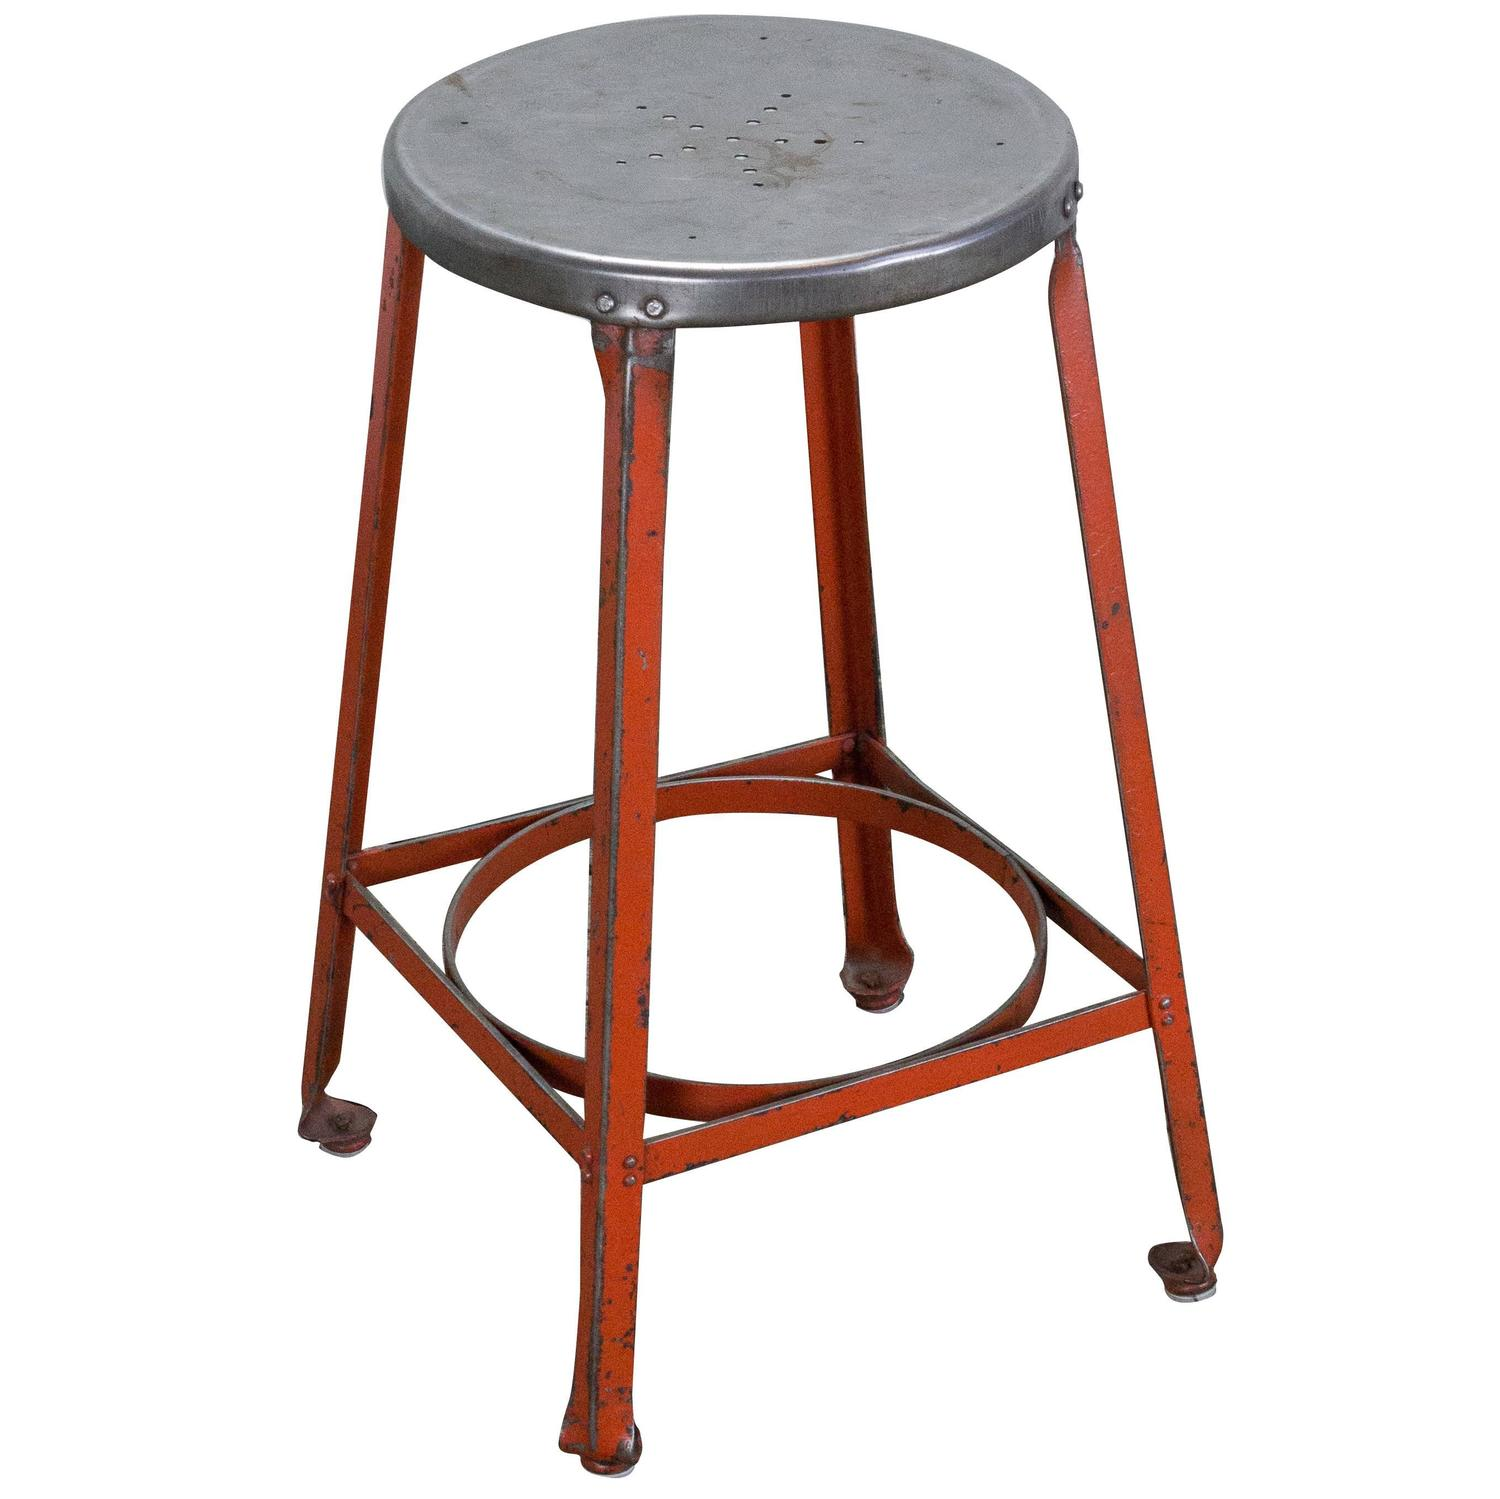 Industrial Stool with Red Legs For Sale at 1stdibs : ST121104orgz from 1stdibs.com size 1500 x 1499 jpeg 105kB